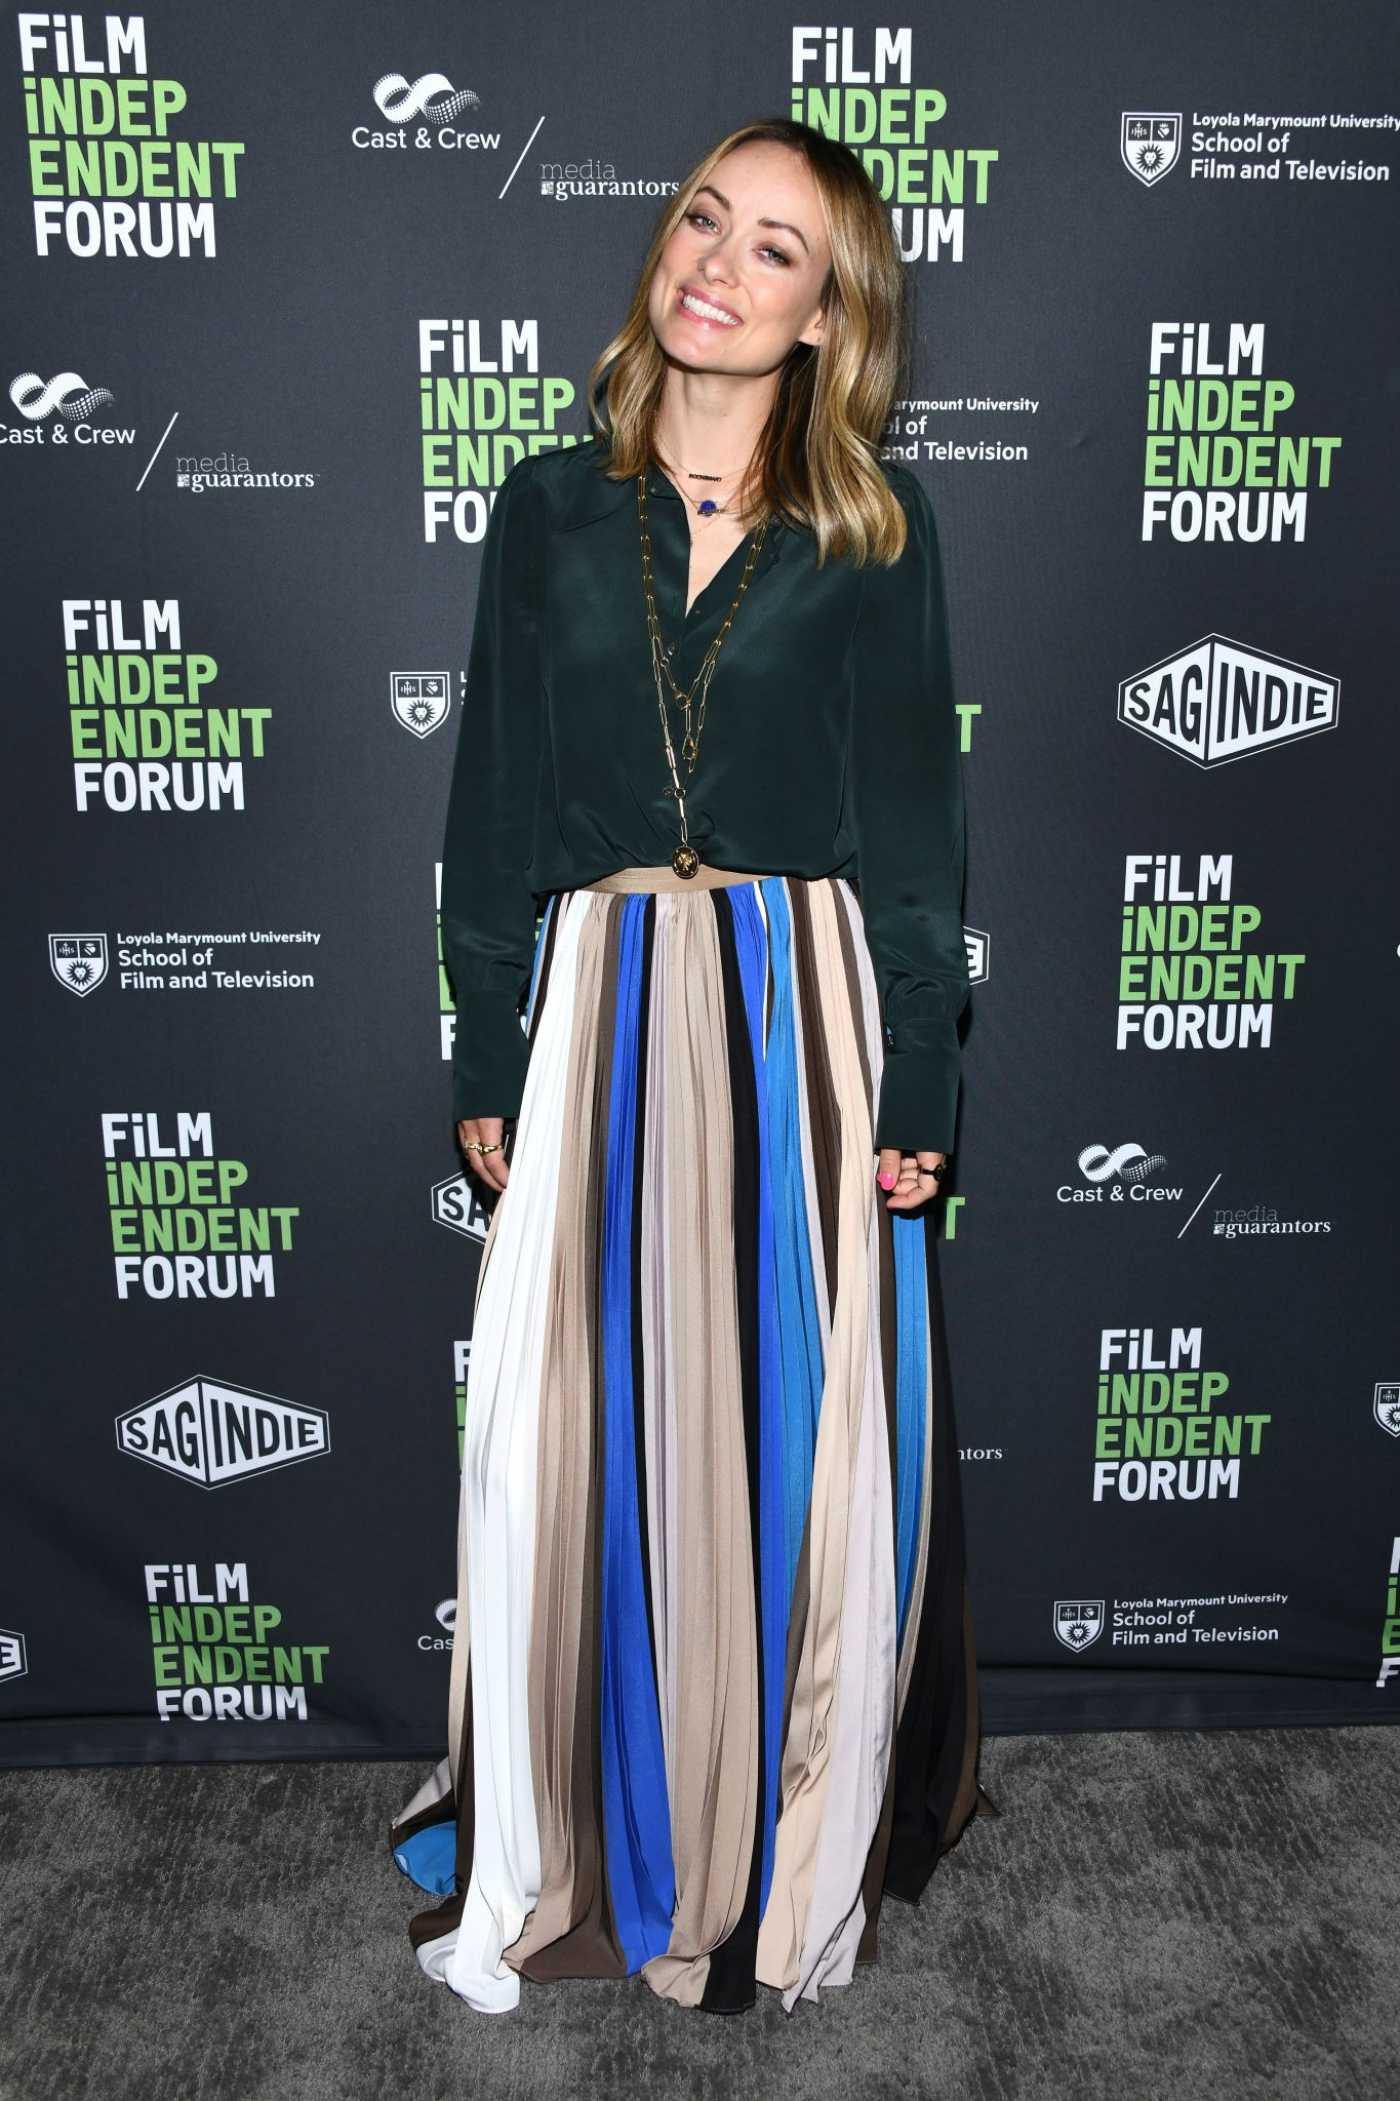 Olivia Wilde Attends Booksmart at the Film Independent Forum in Los Angeles 04/26/2019